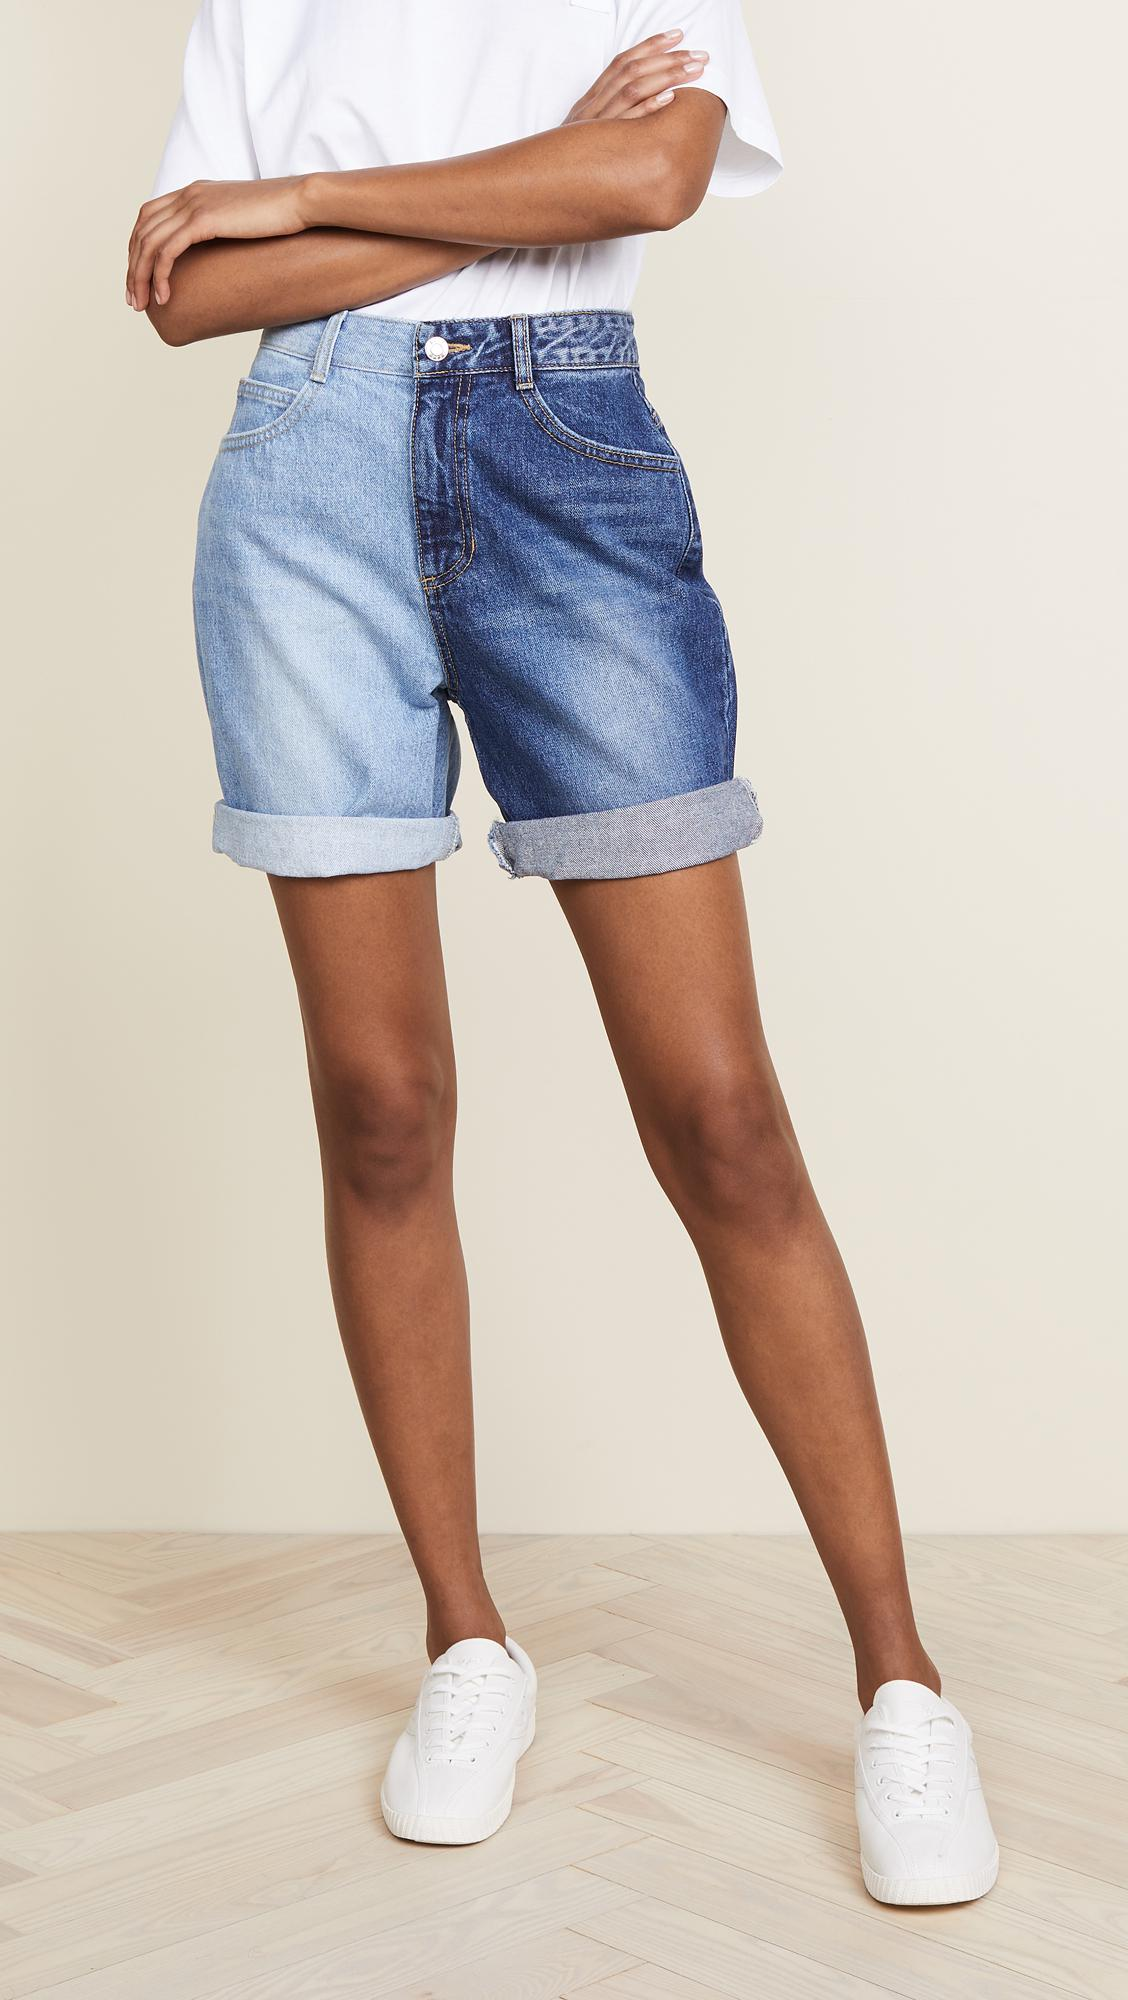 DENIM - Denim shorts Sjyp dkjH658UnT